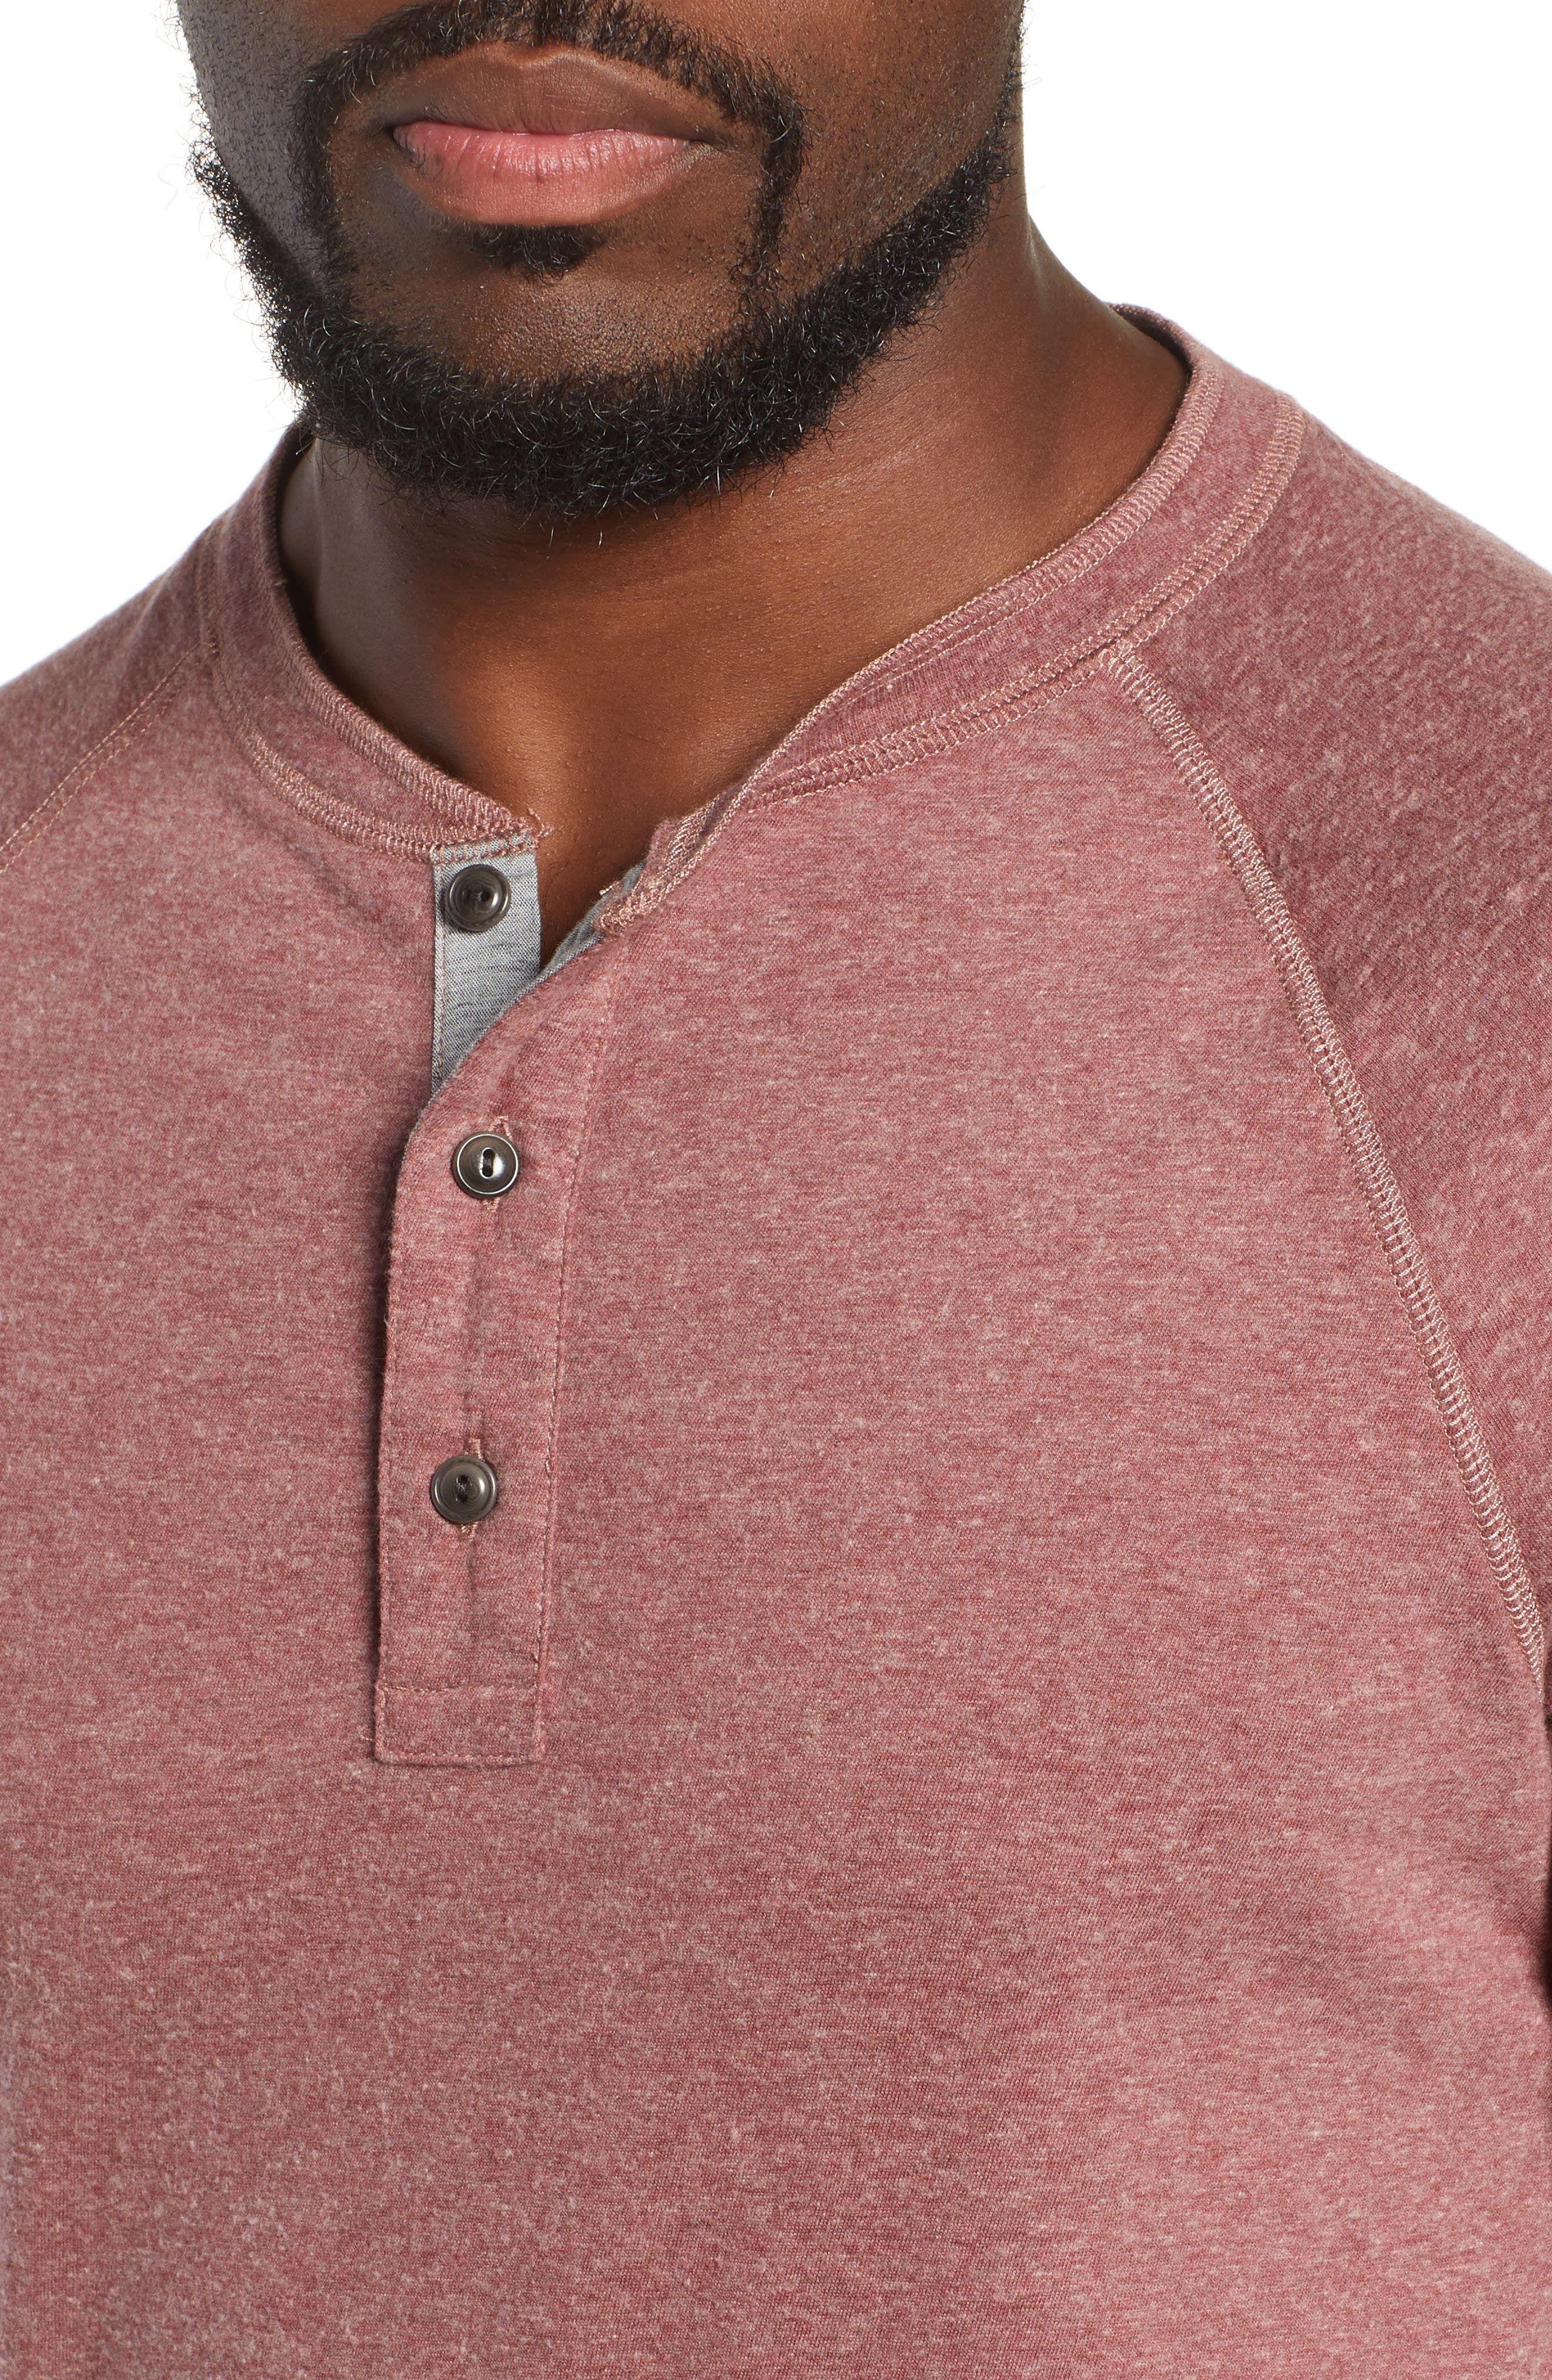 Luxe Heather Knit Organic Cotton Henley,                             Alternate thumbnail 4, color,                             BURGUNDY